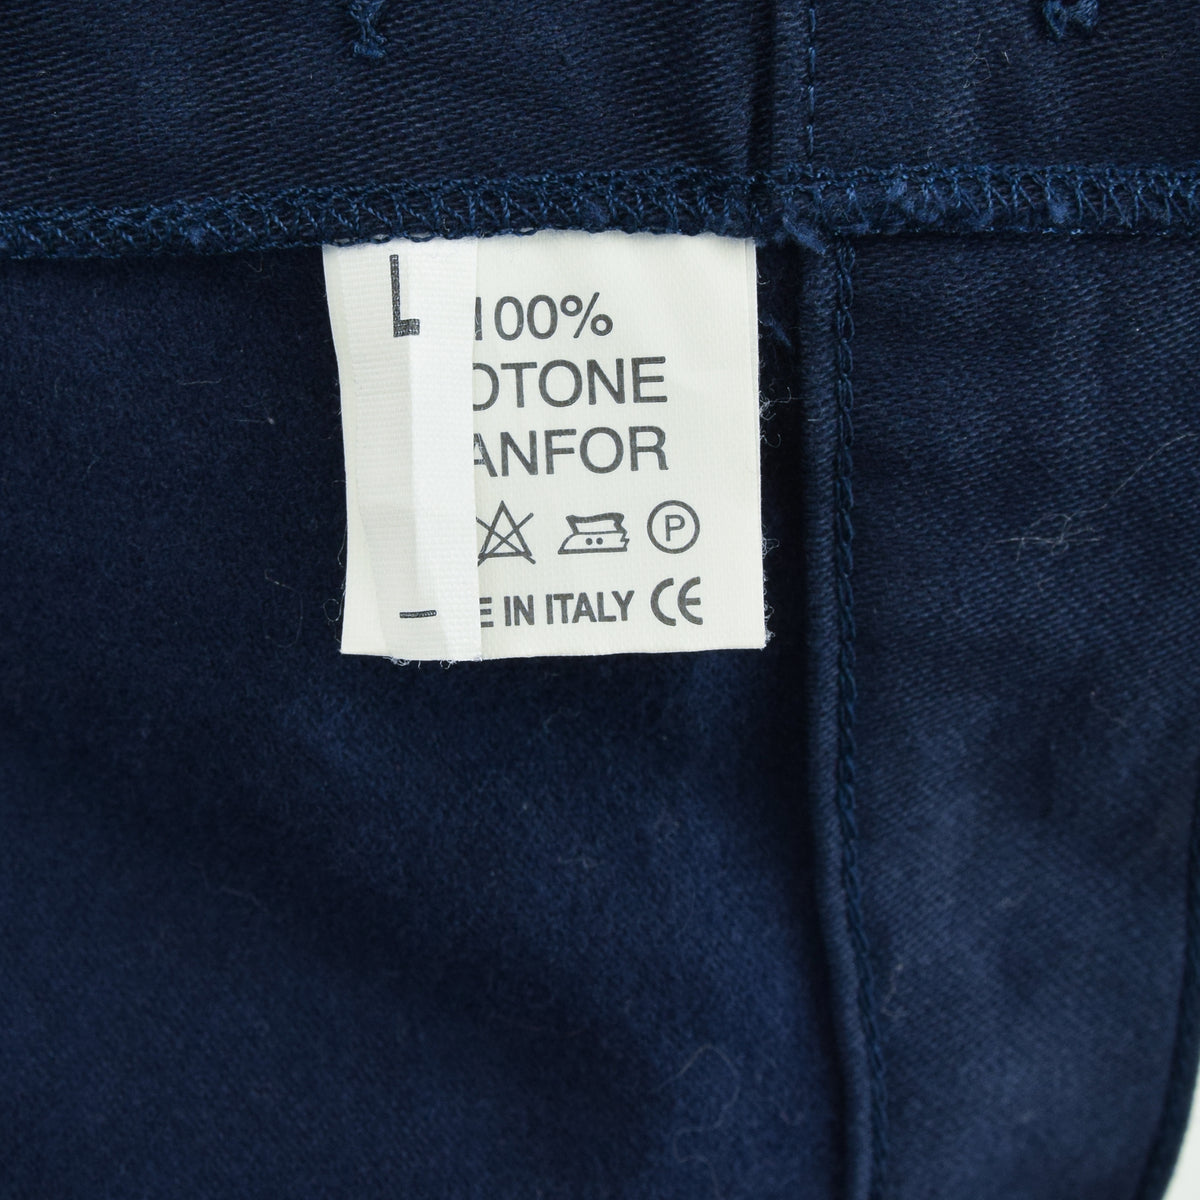 Vintage Deadstock Blue French Style Work Utility Trousers Italy Made 34 W 34 L label